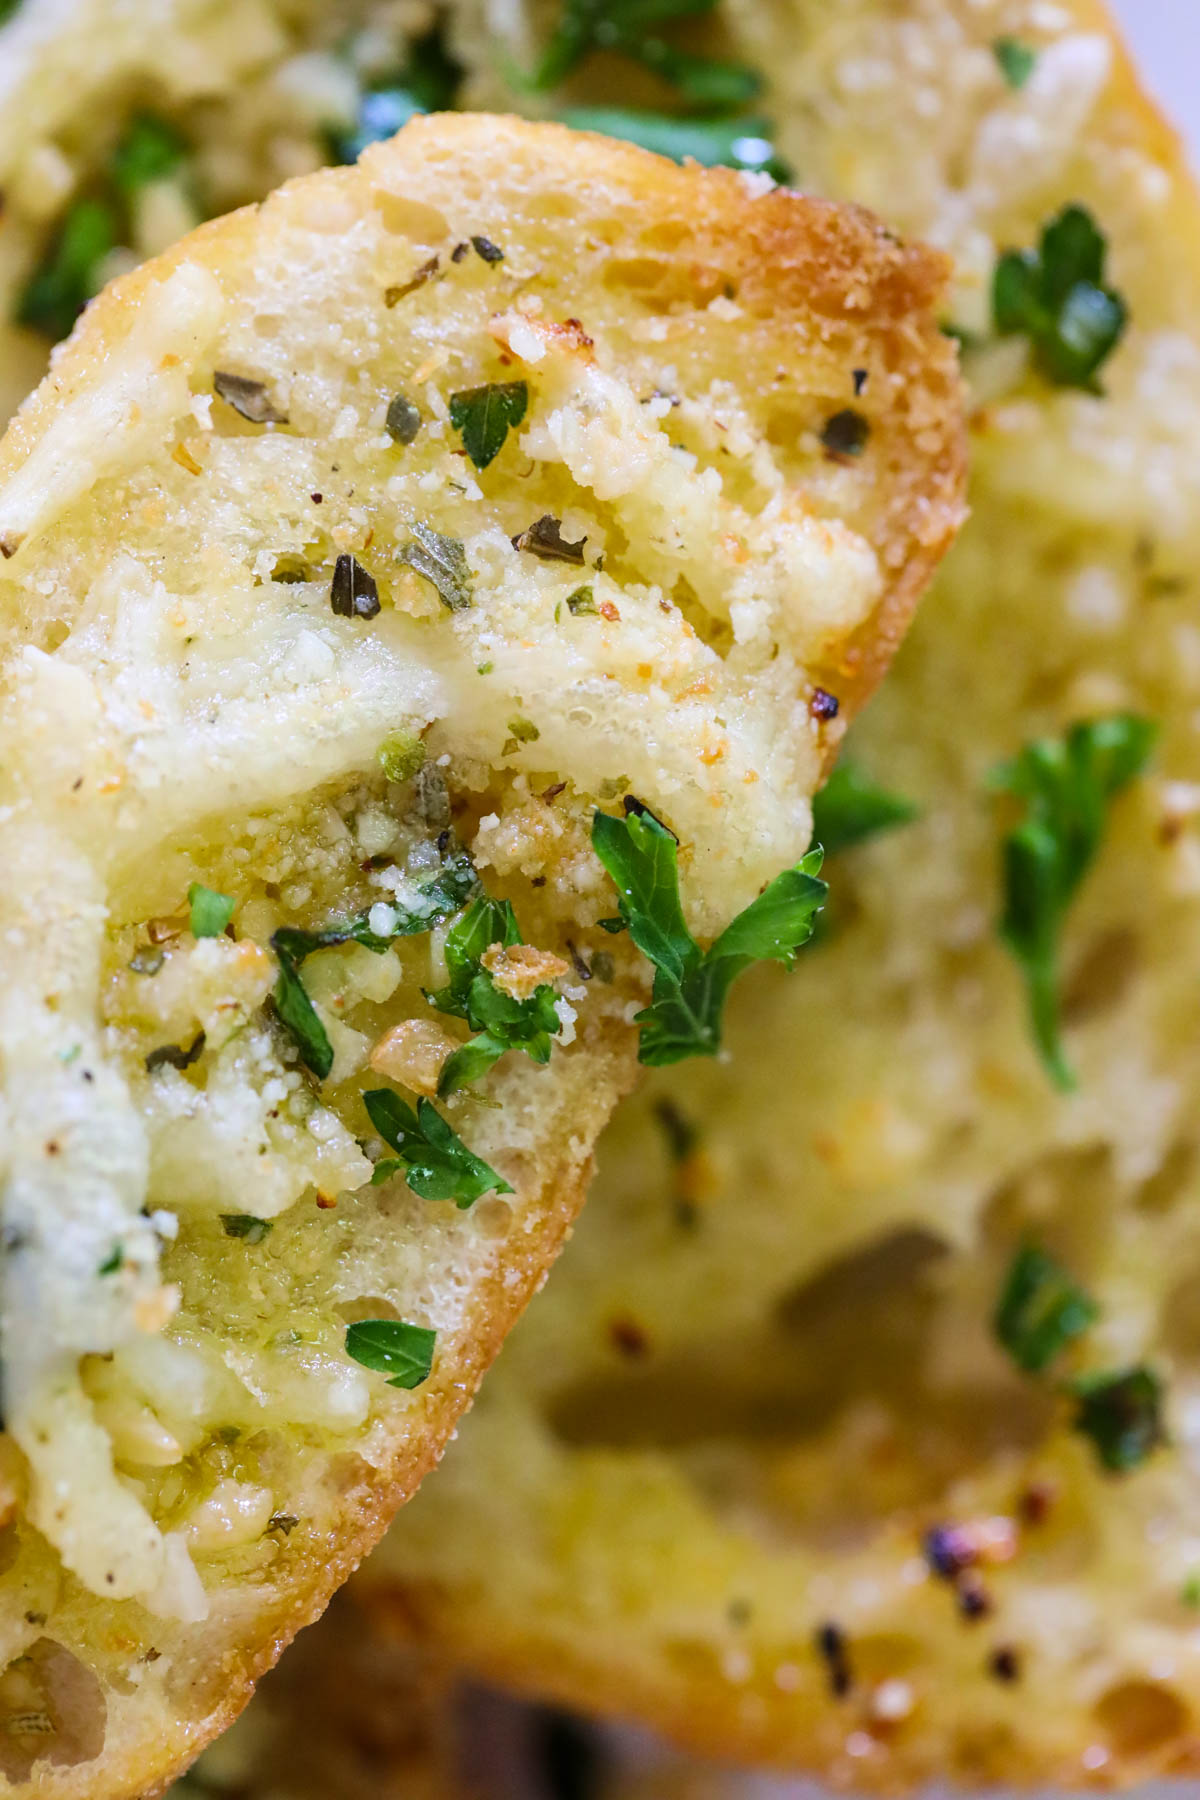 close up of garlic bread with cheese and Italian seasoning blend